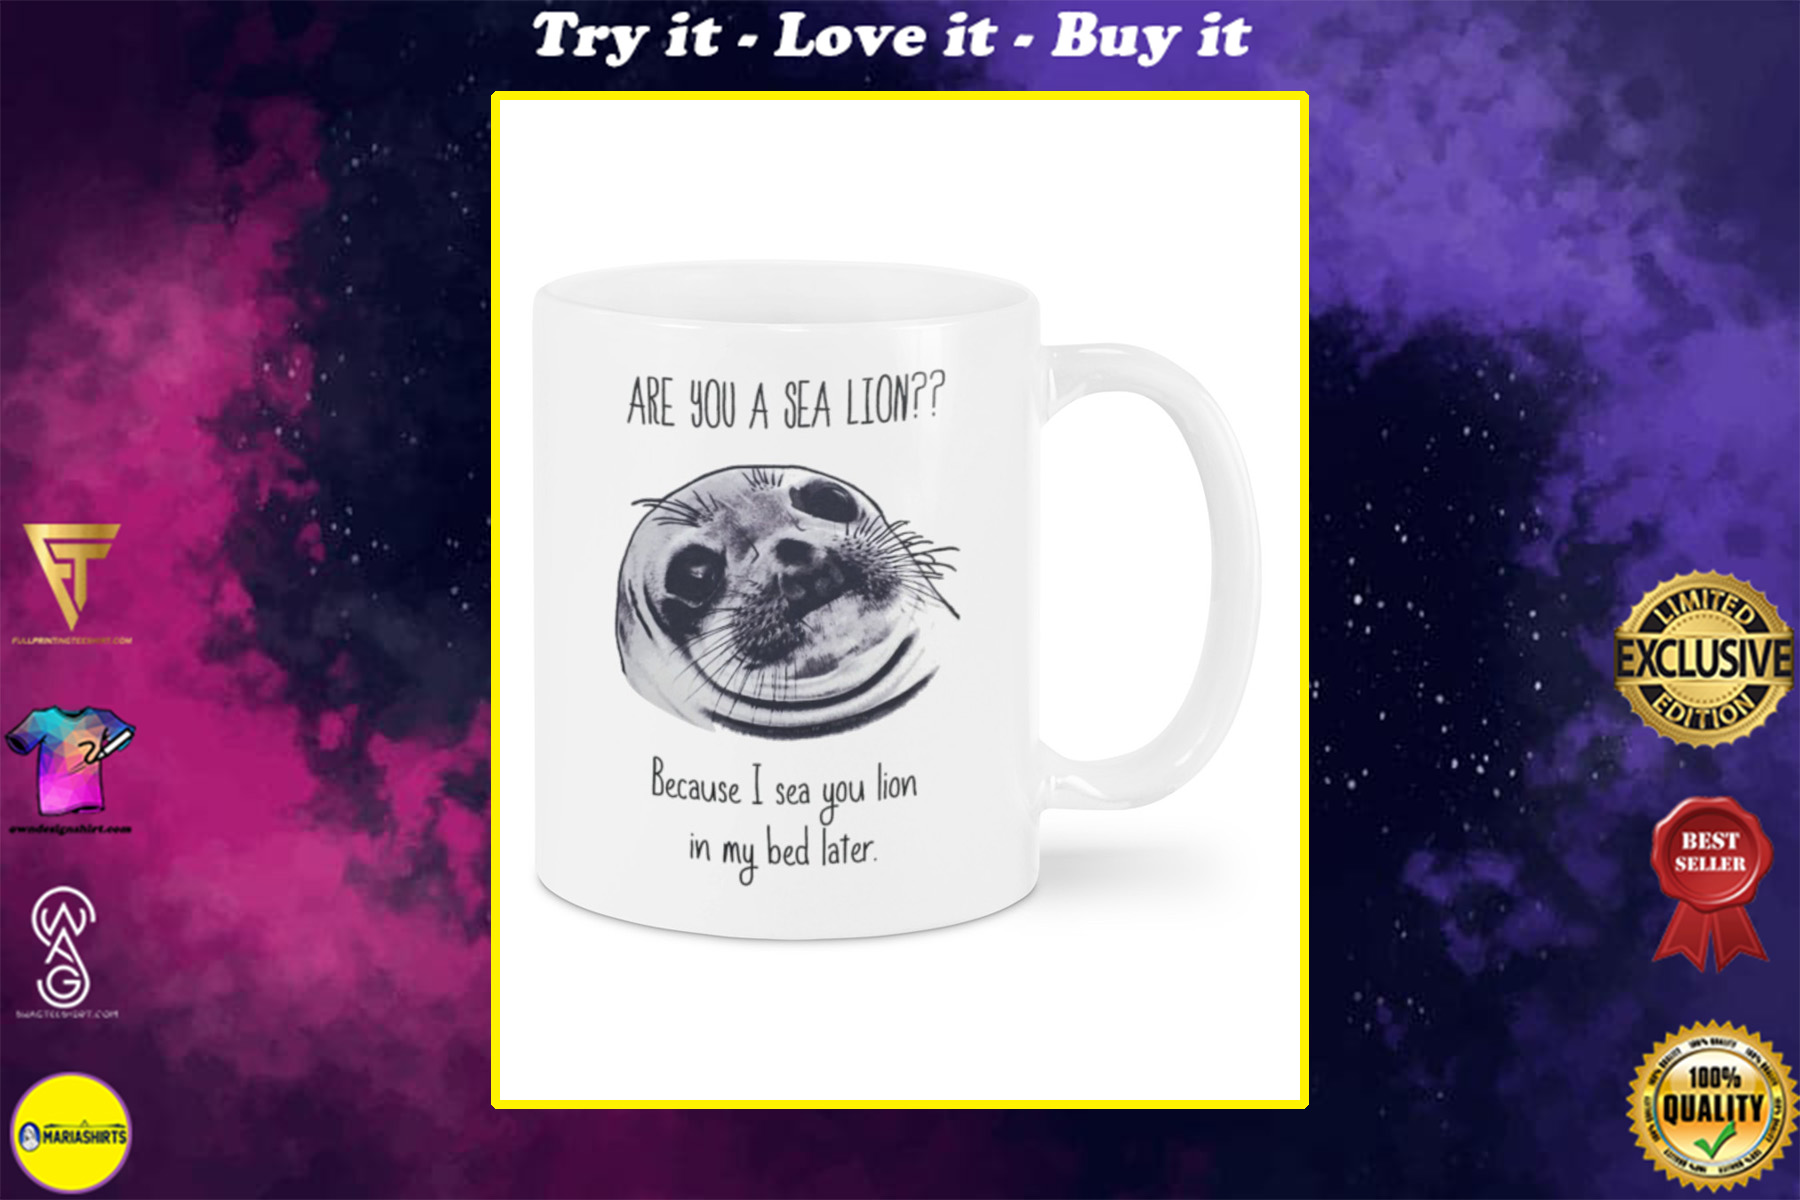 are you a sea lion because i see you lion in my bed later happy valentines day mug